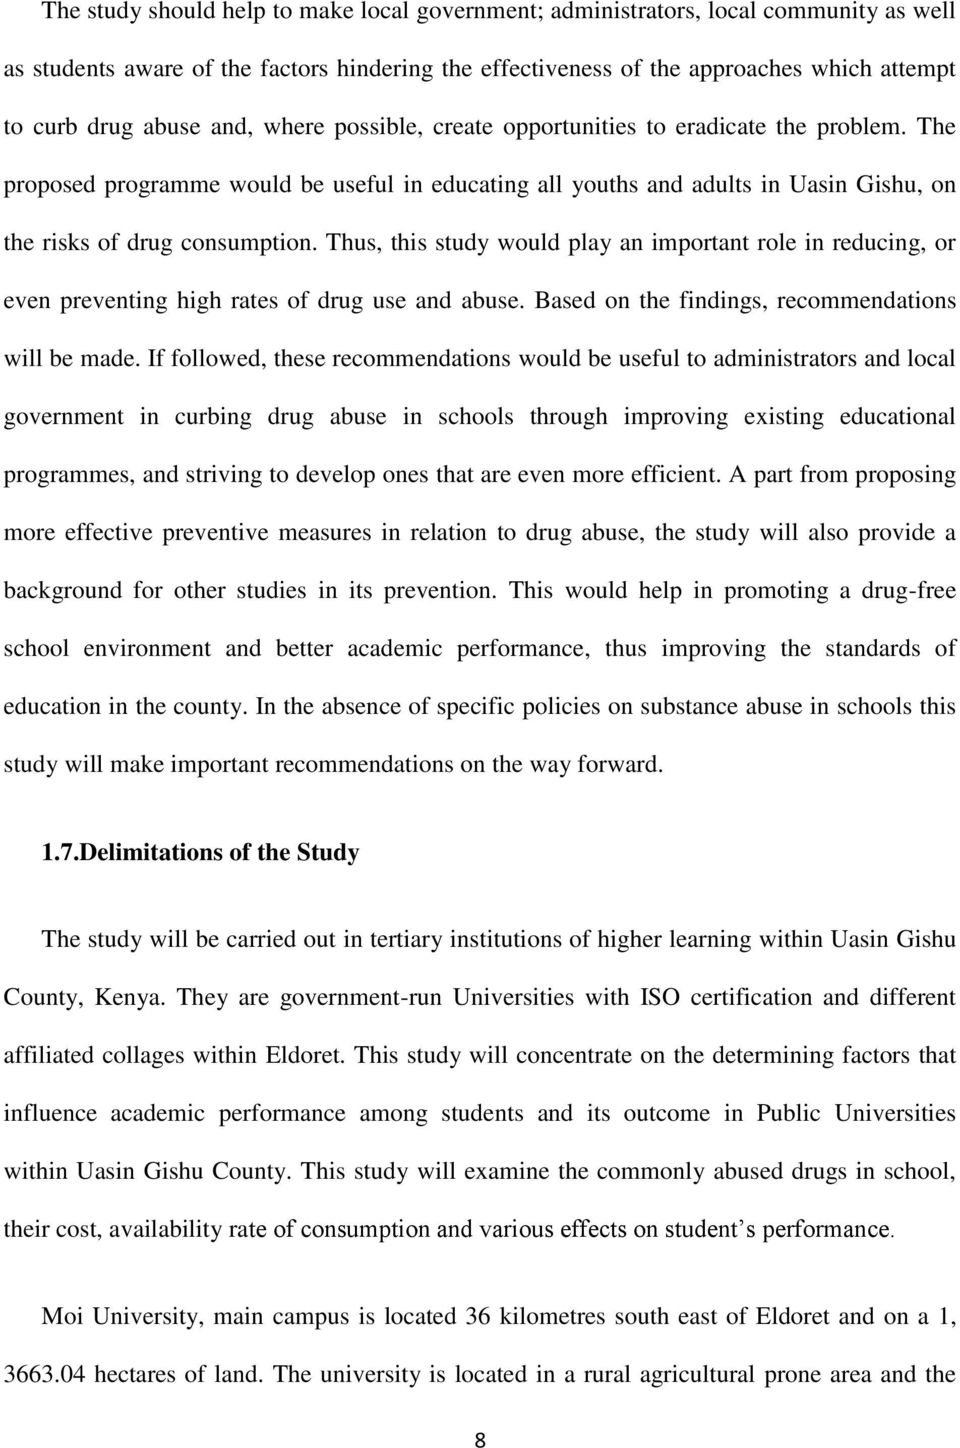 influence of drug abuse on students academic performance in public thus this study would play an important role in reducing or even preventing high